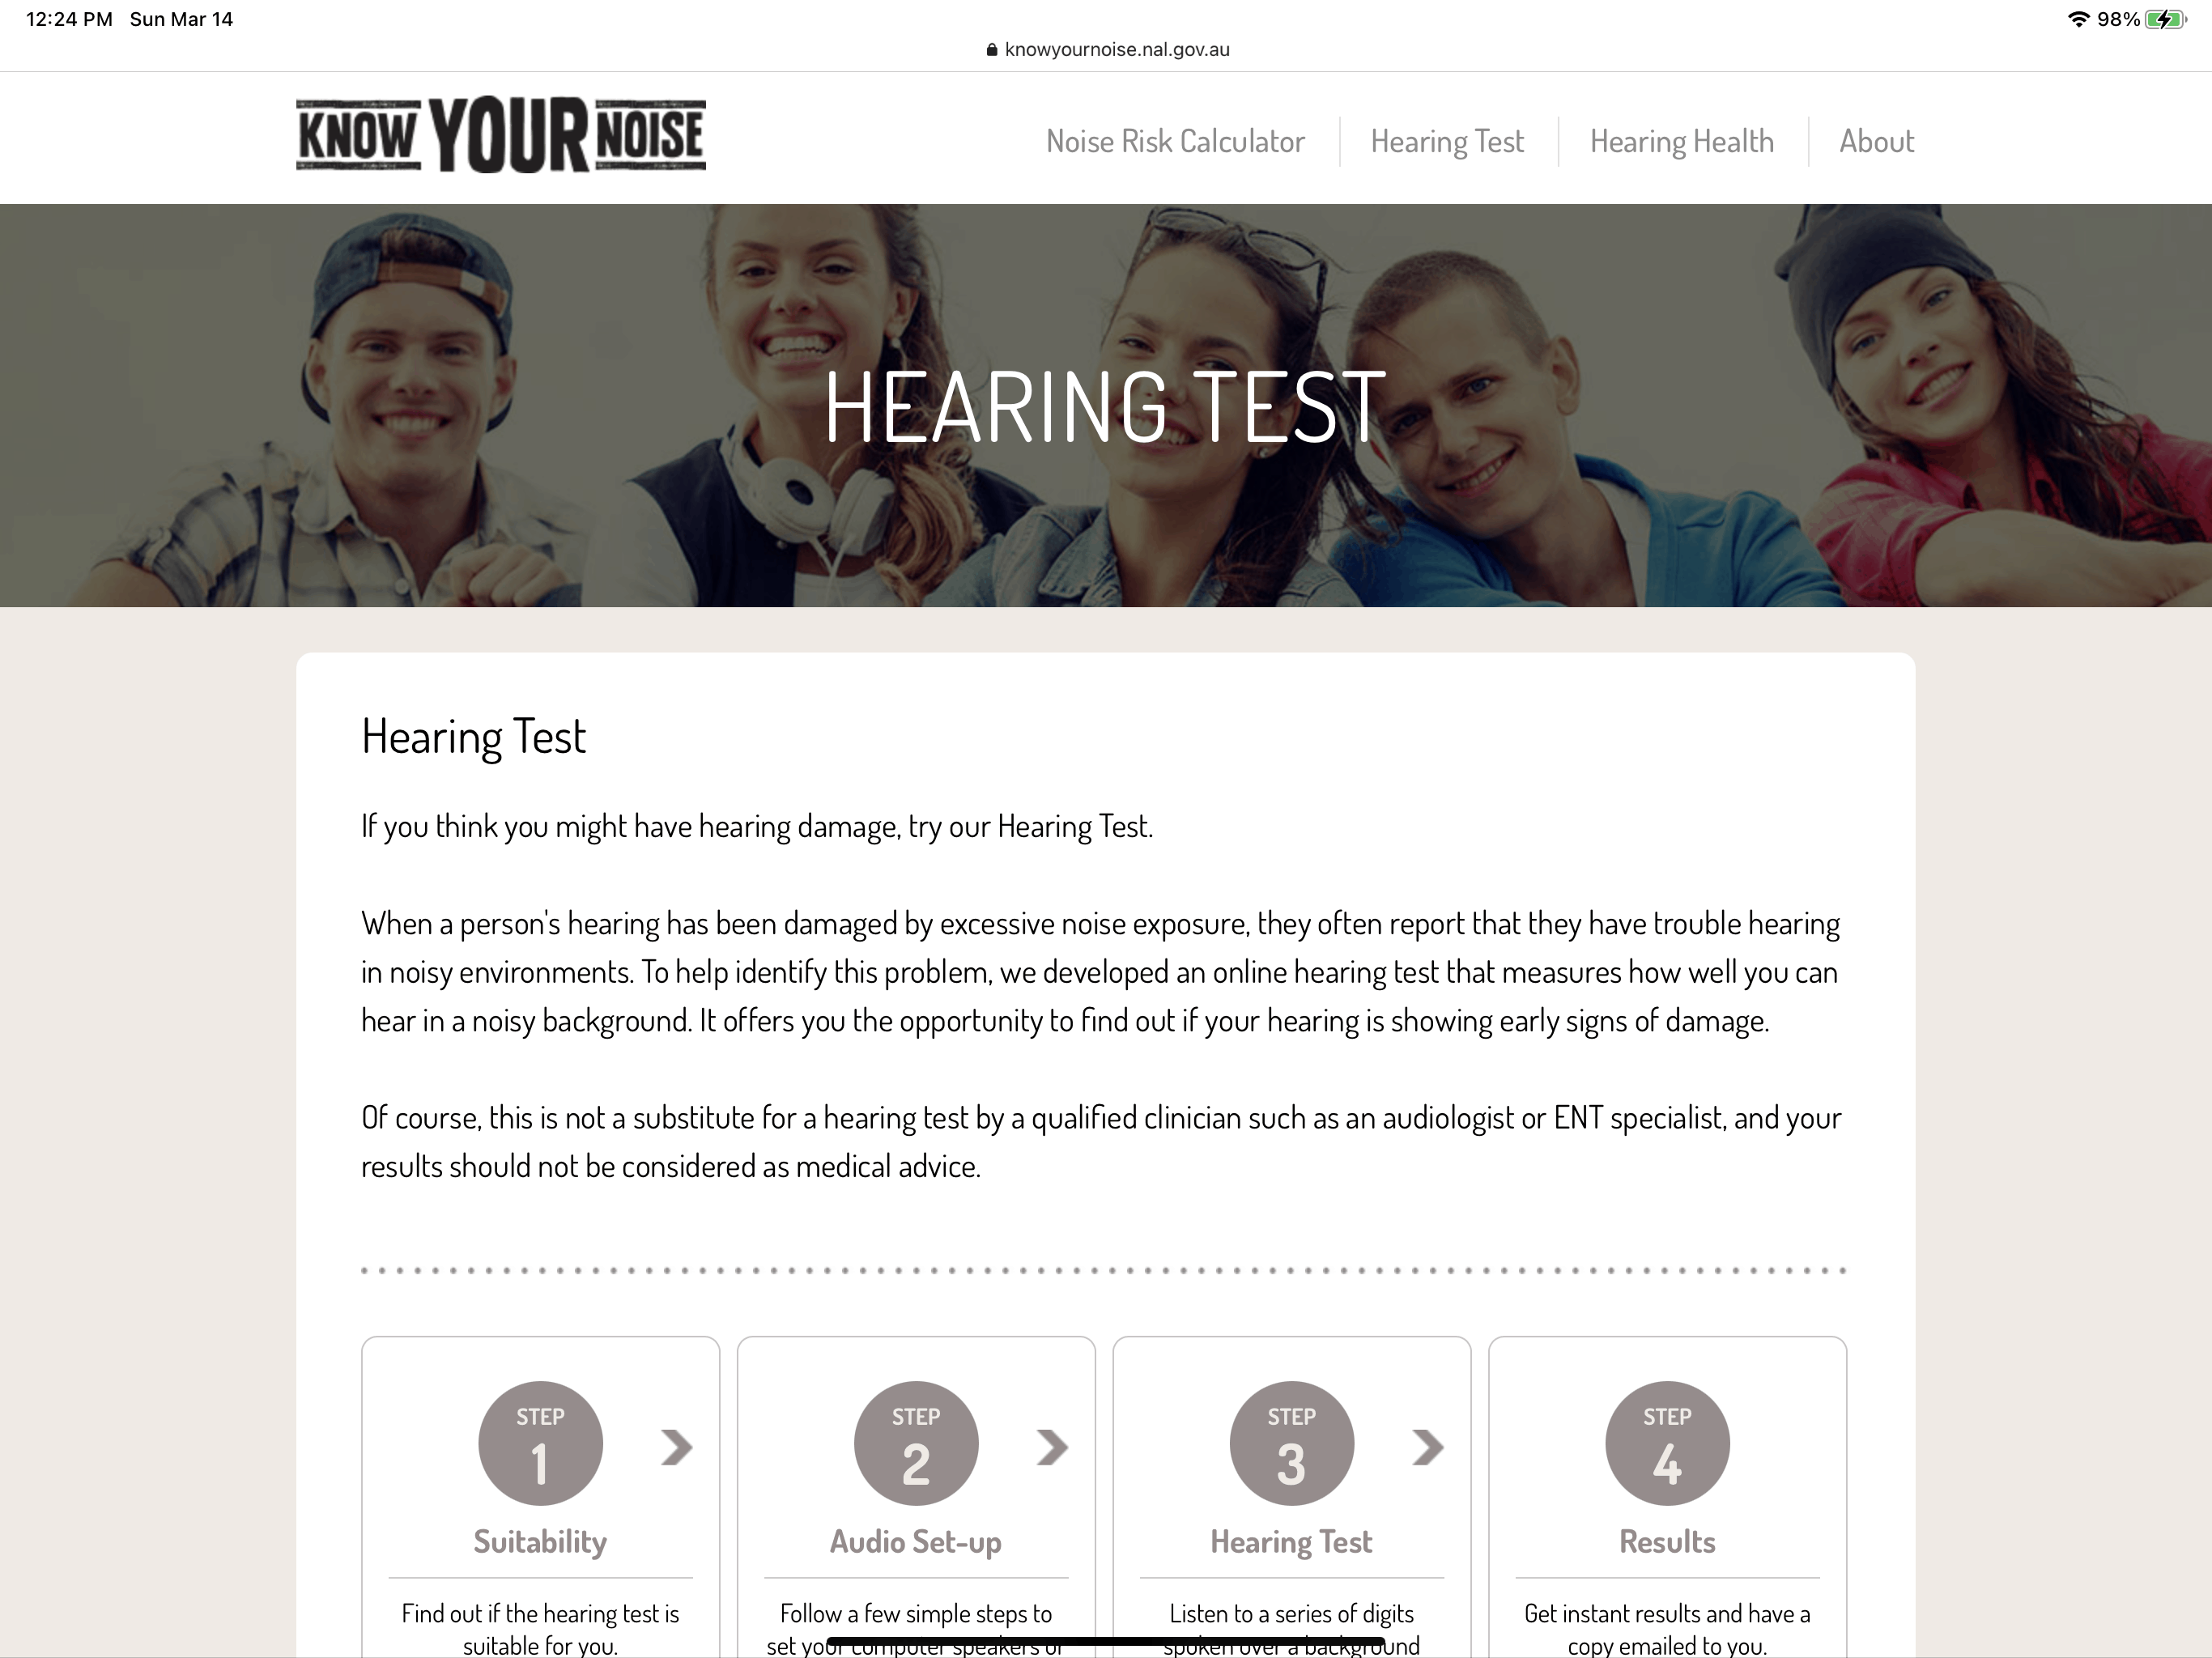 The Know Your Noise hearing test